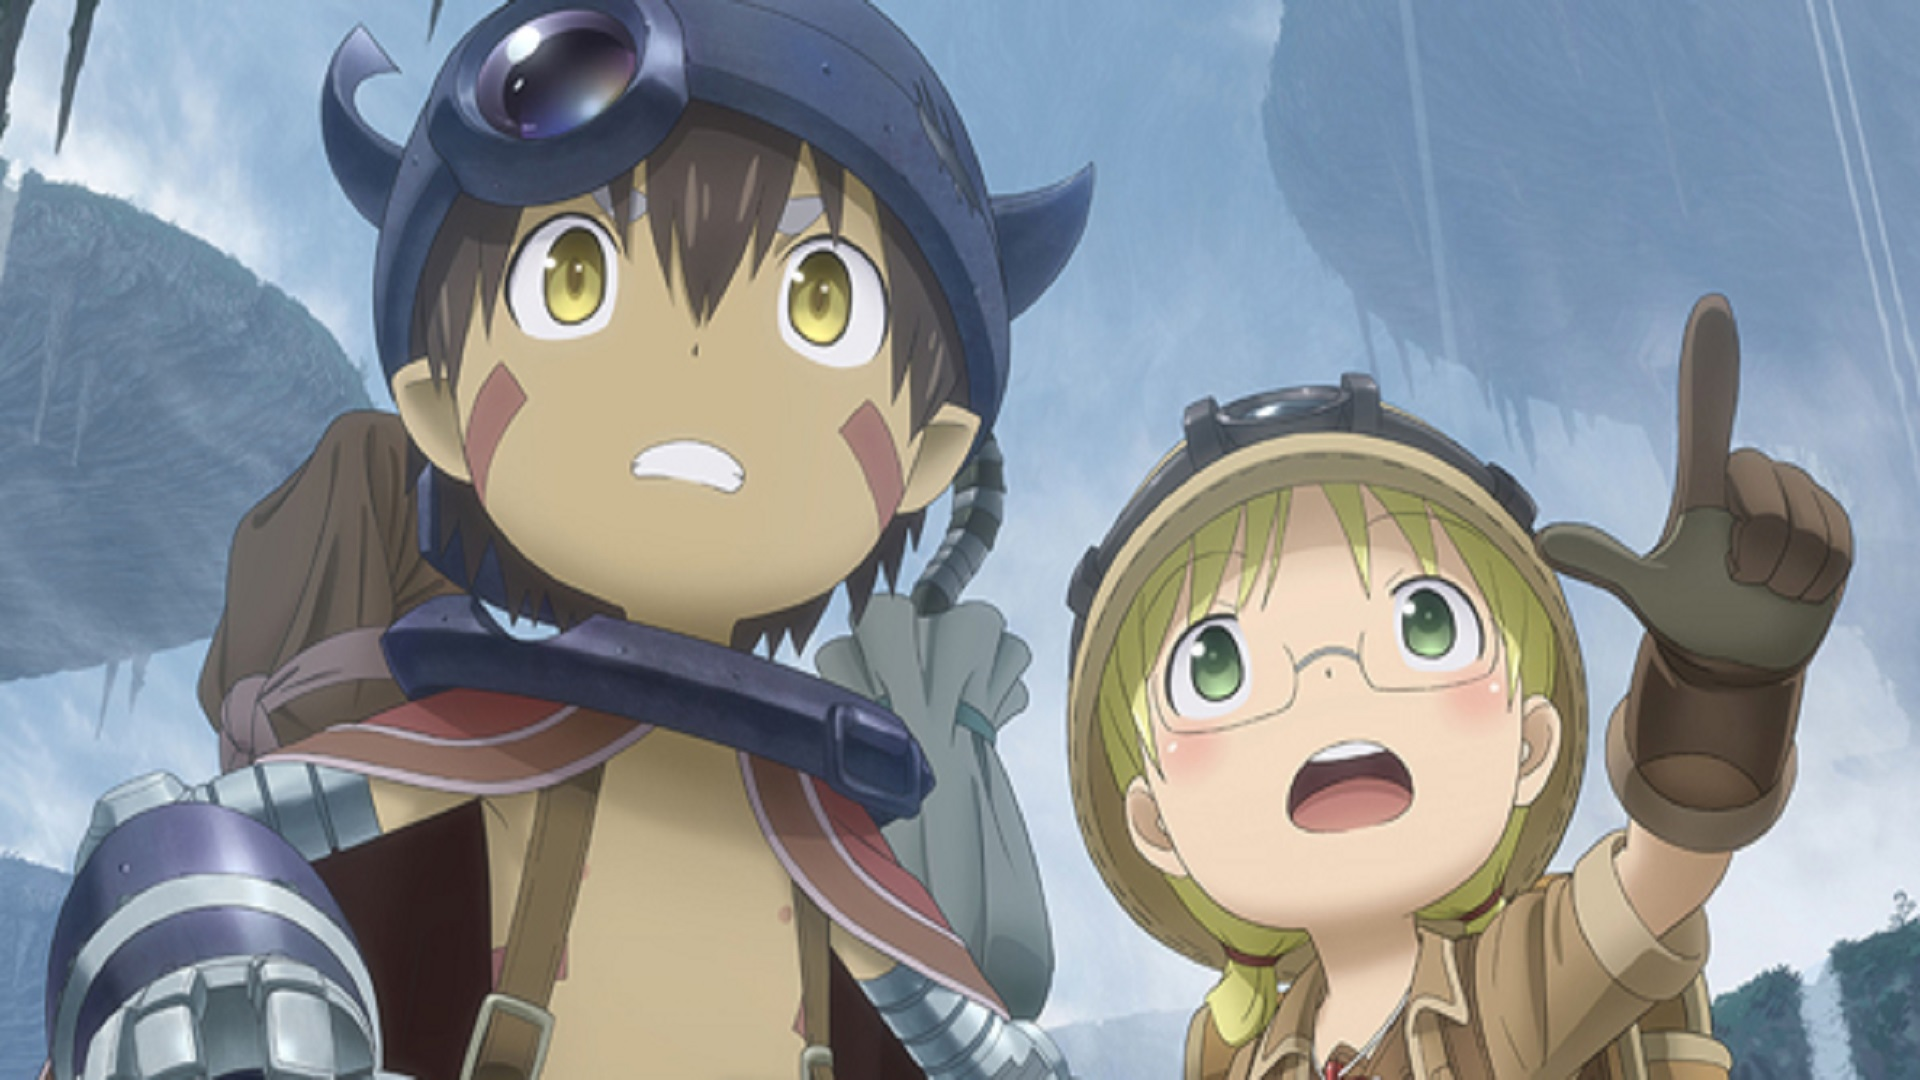 Anime series Made In Abyss is coming to Nintendo Switch as an RPG